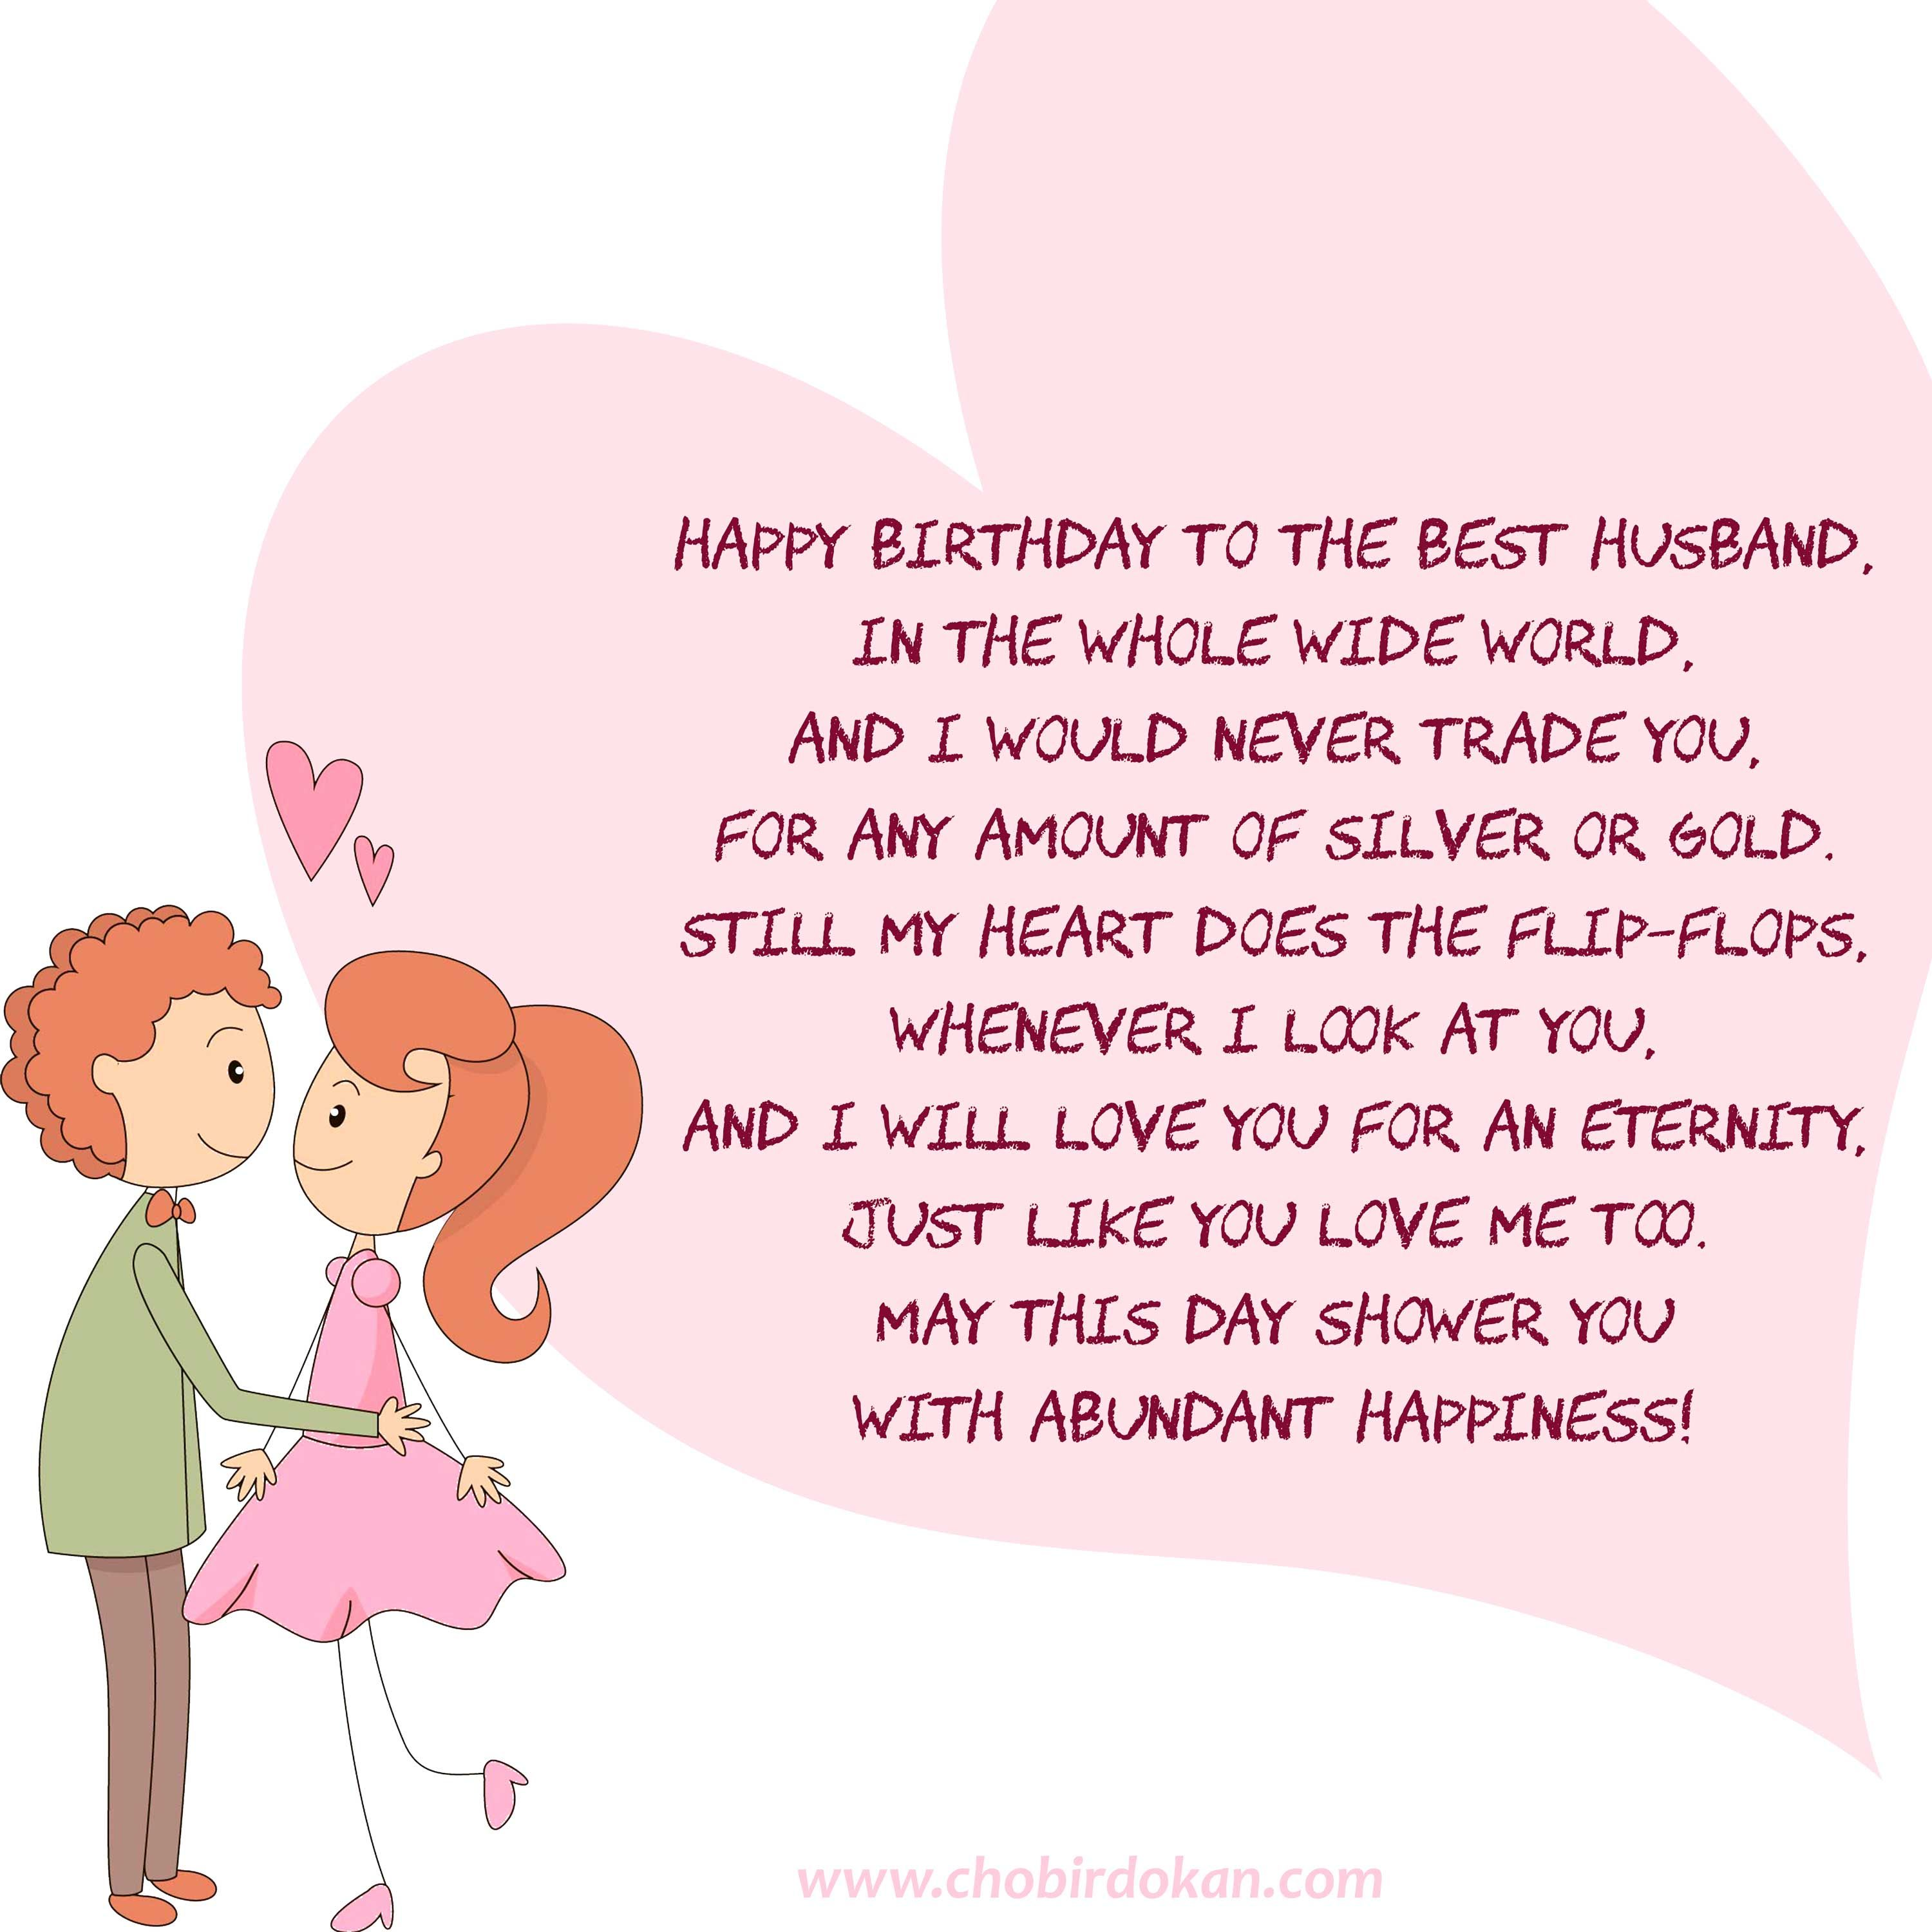 Romantic Birthday Card For Him design your own wedding thank you